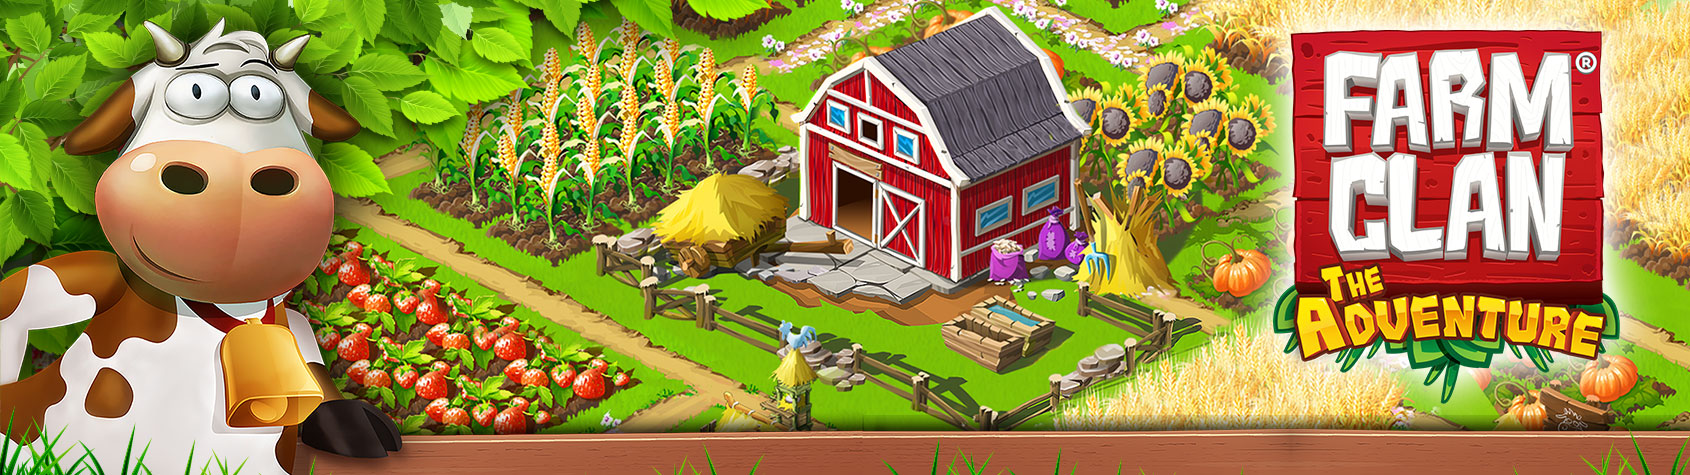 Farm Clan: Farm Life Adventure